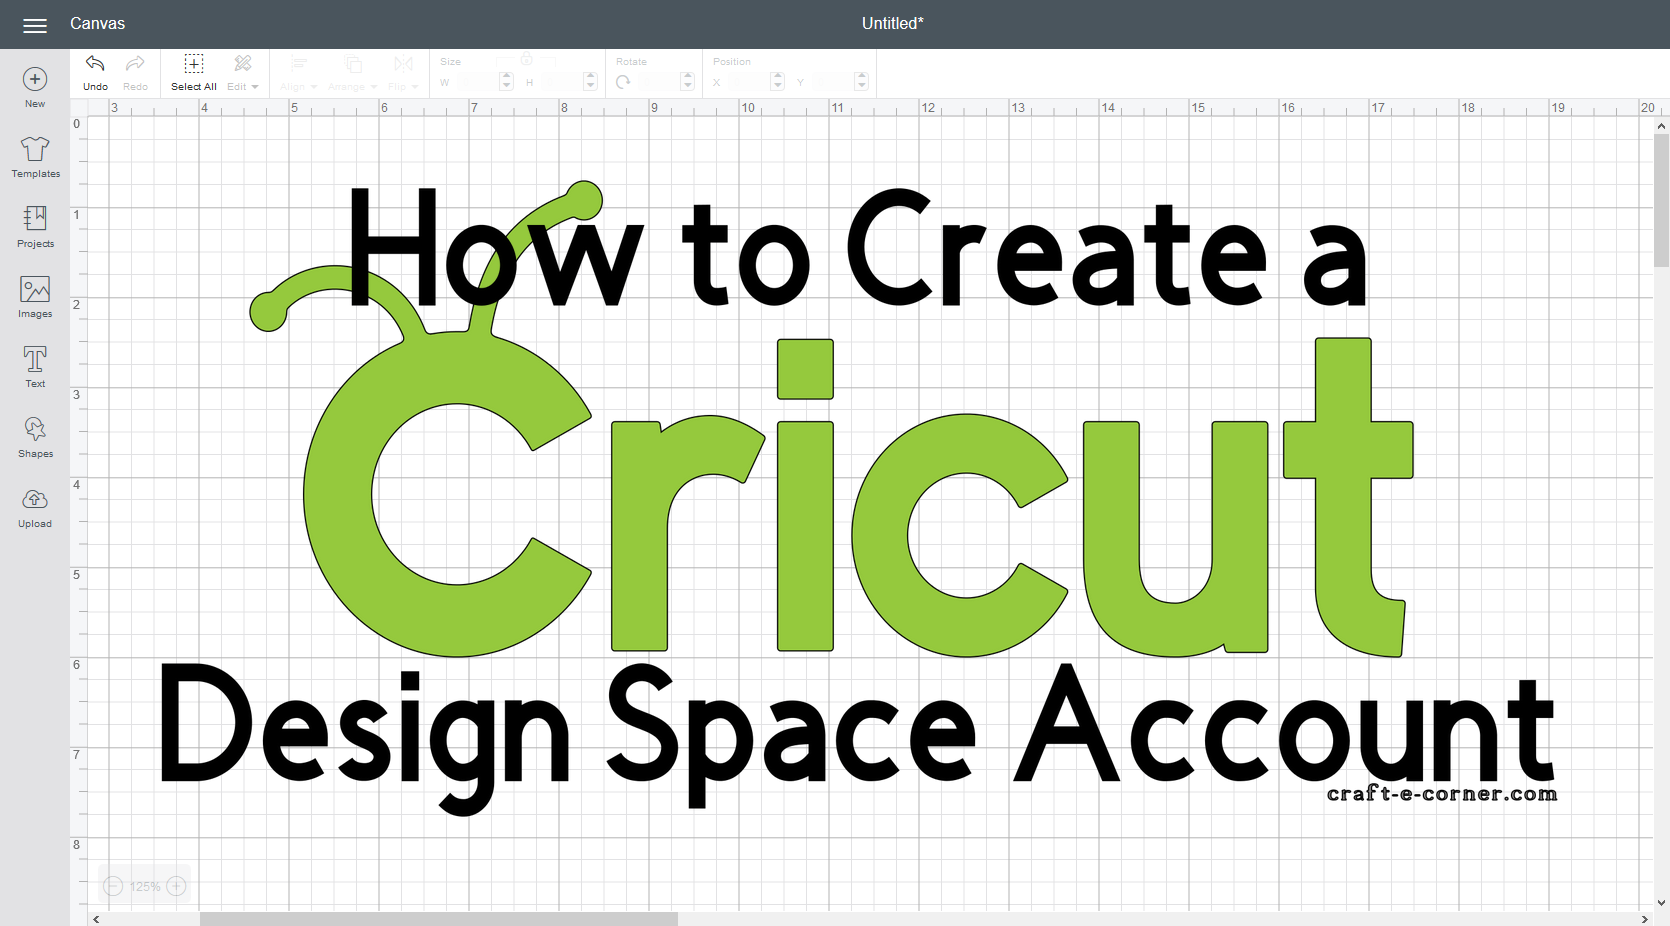 How to Create a Cricut Design Space Account